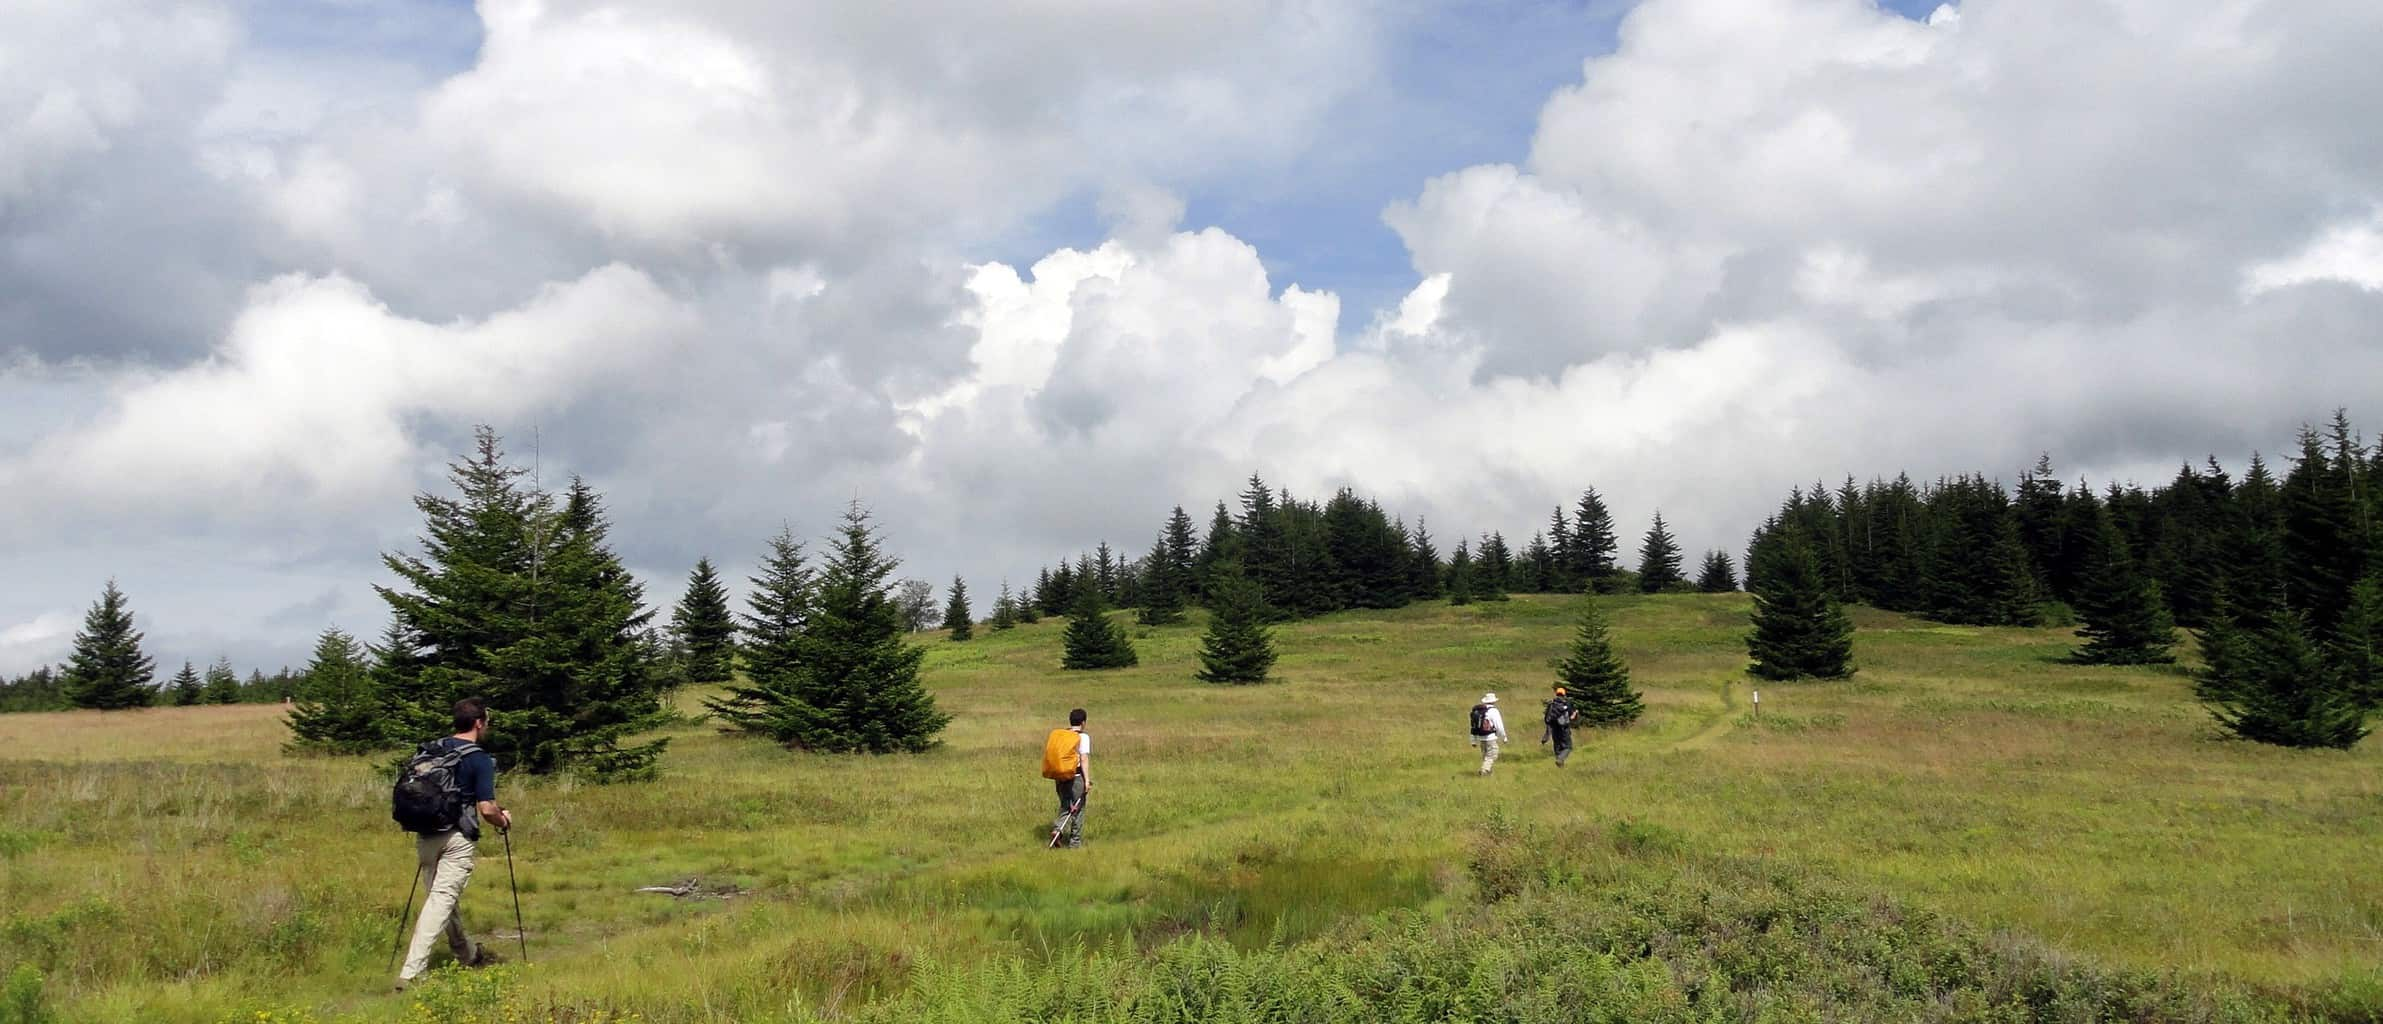 Backpacking through Bogs and Blueberries: 18 Miles in Dolly Sods North